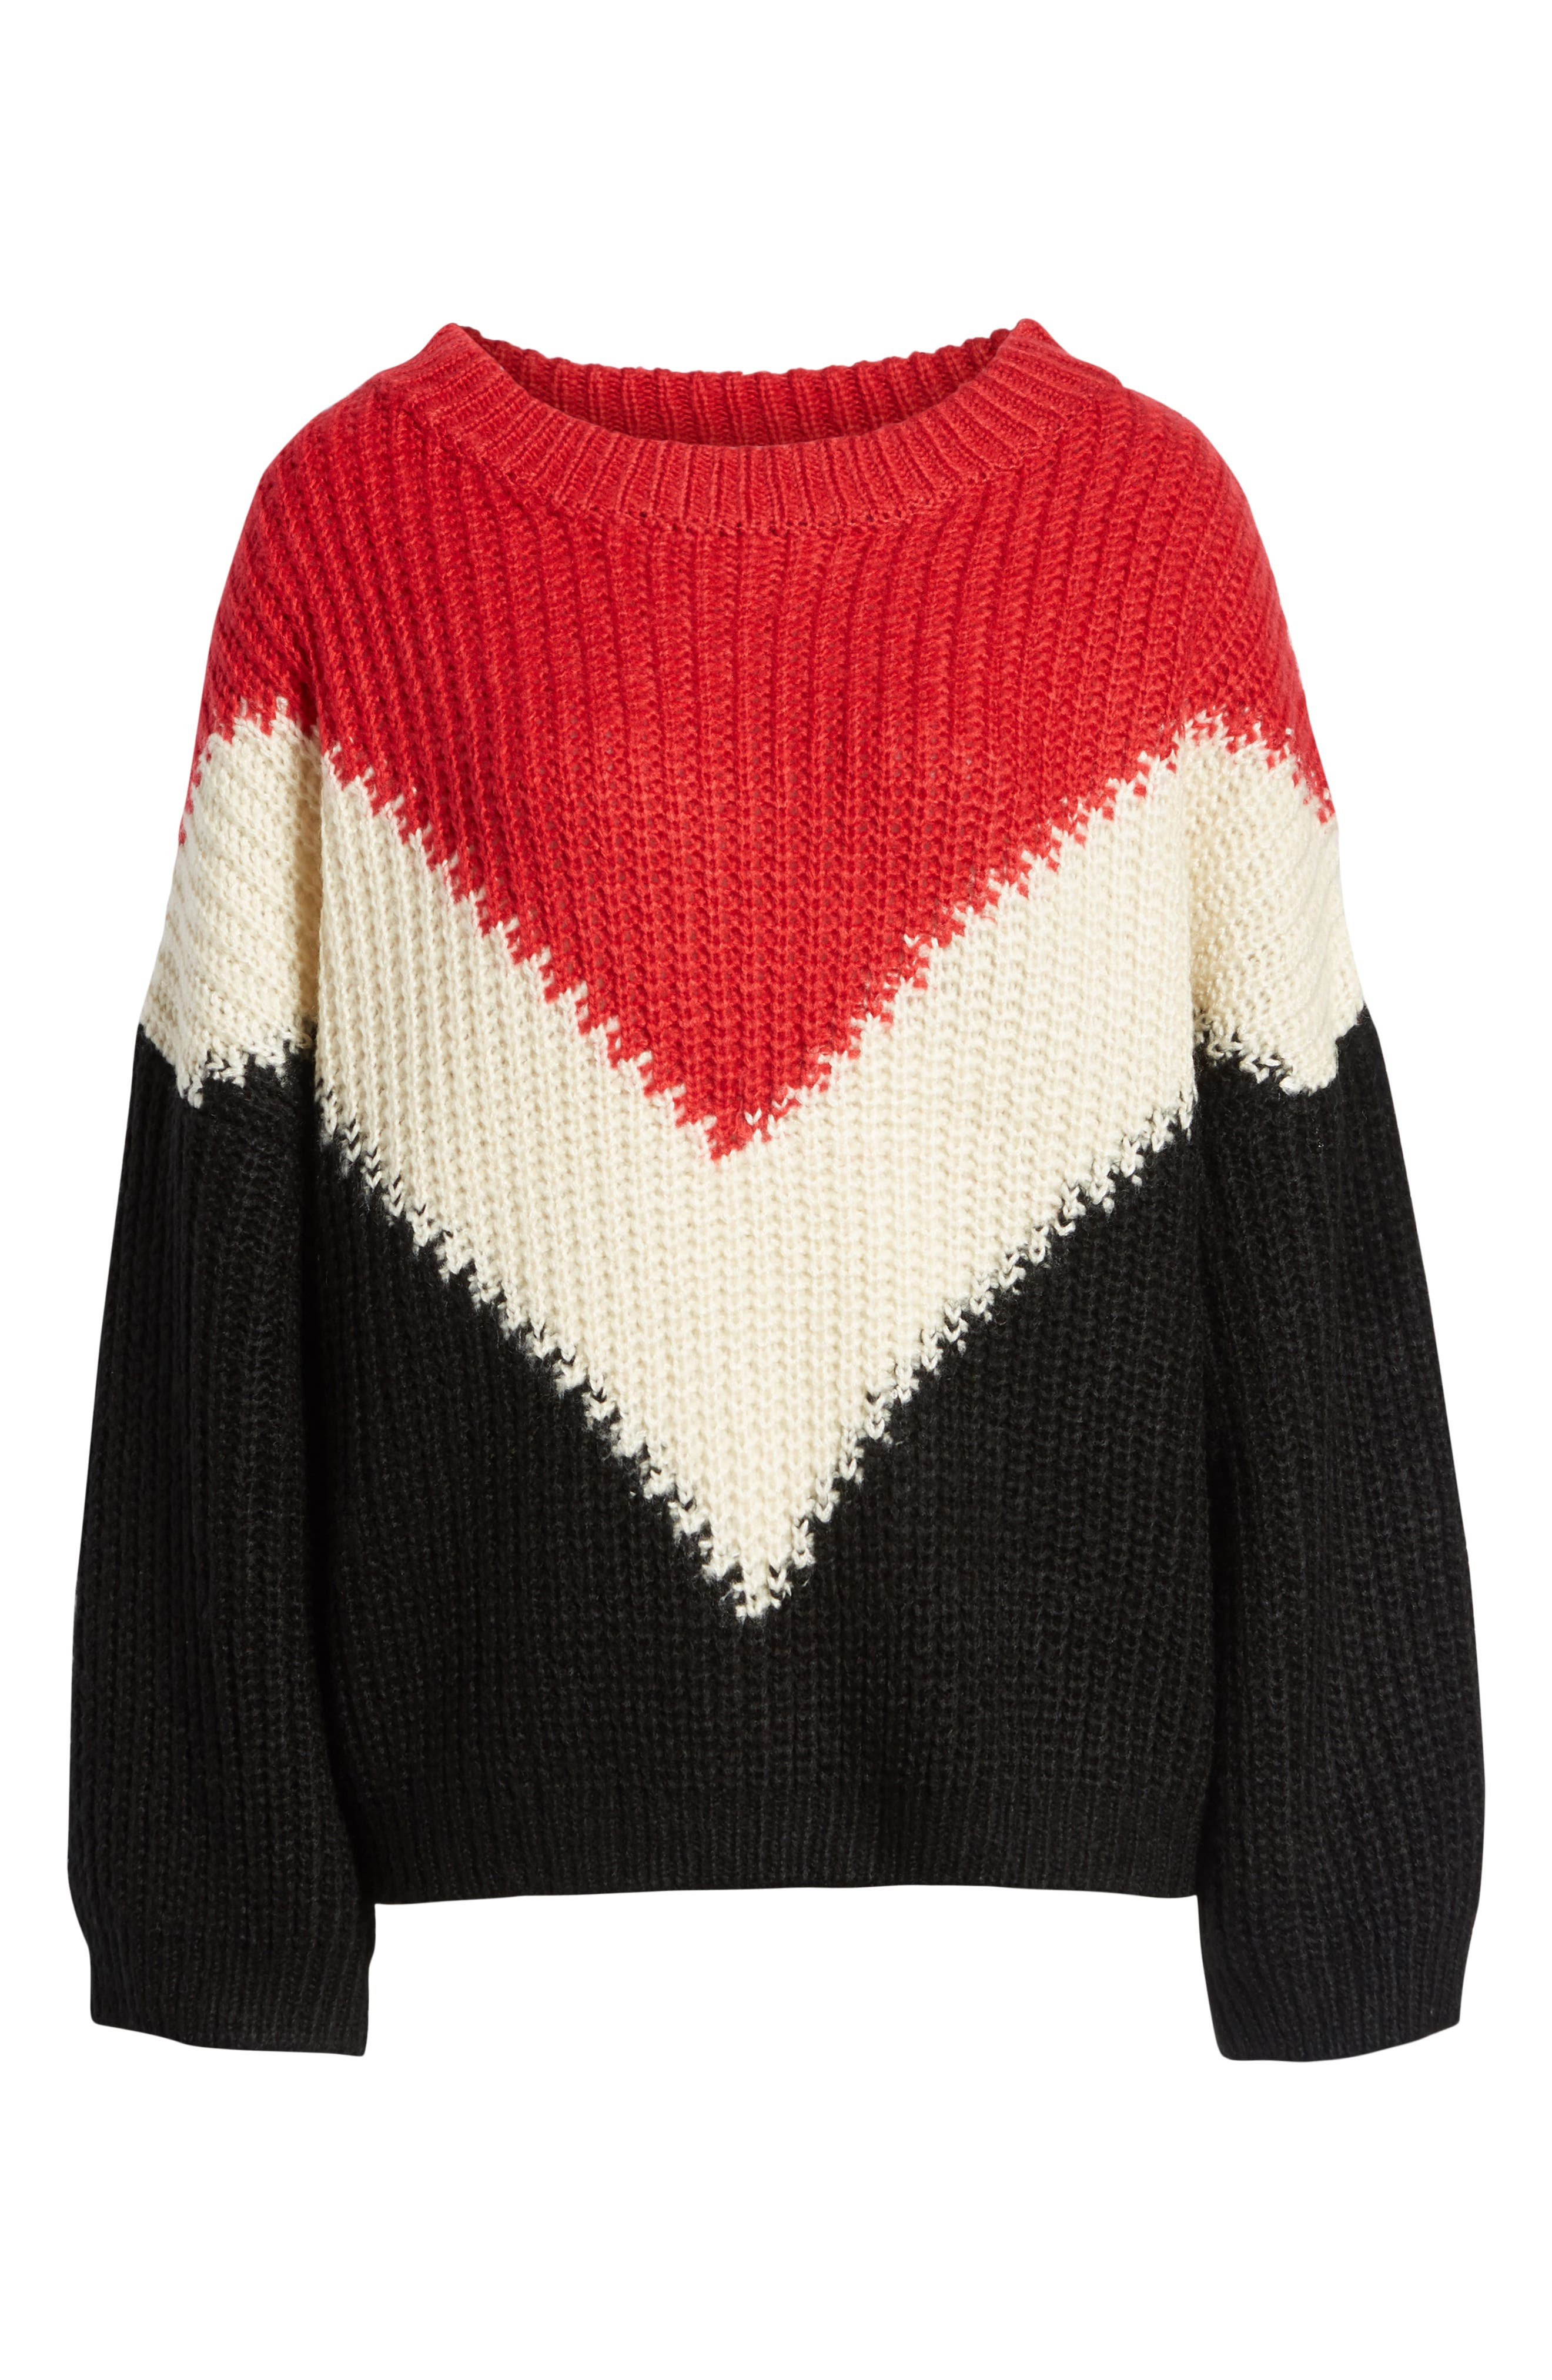 BISHOP + YOUNG,                             The Anthem Colorblock Shaker Sweater,                             Alternate thumbnail 6, color,                             BLACK